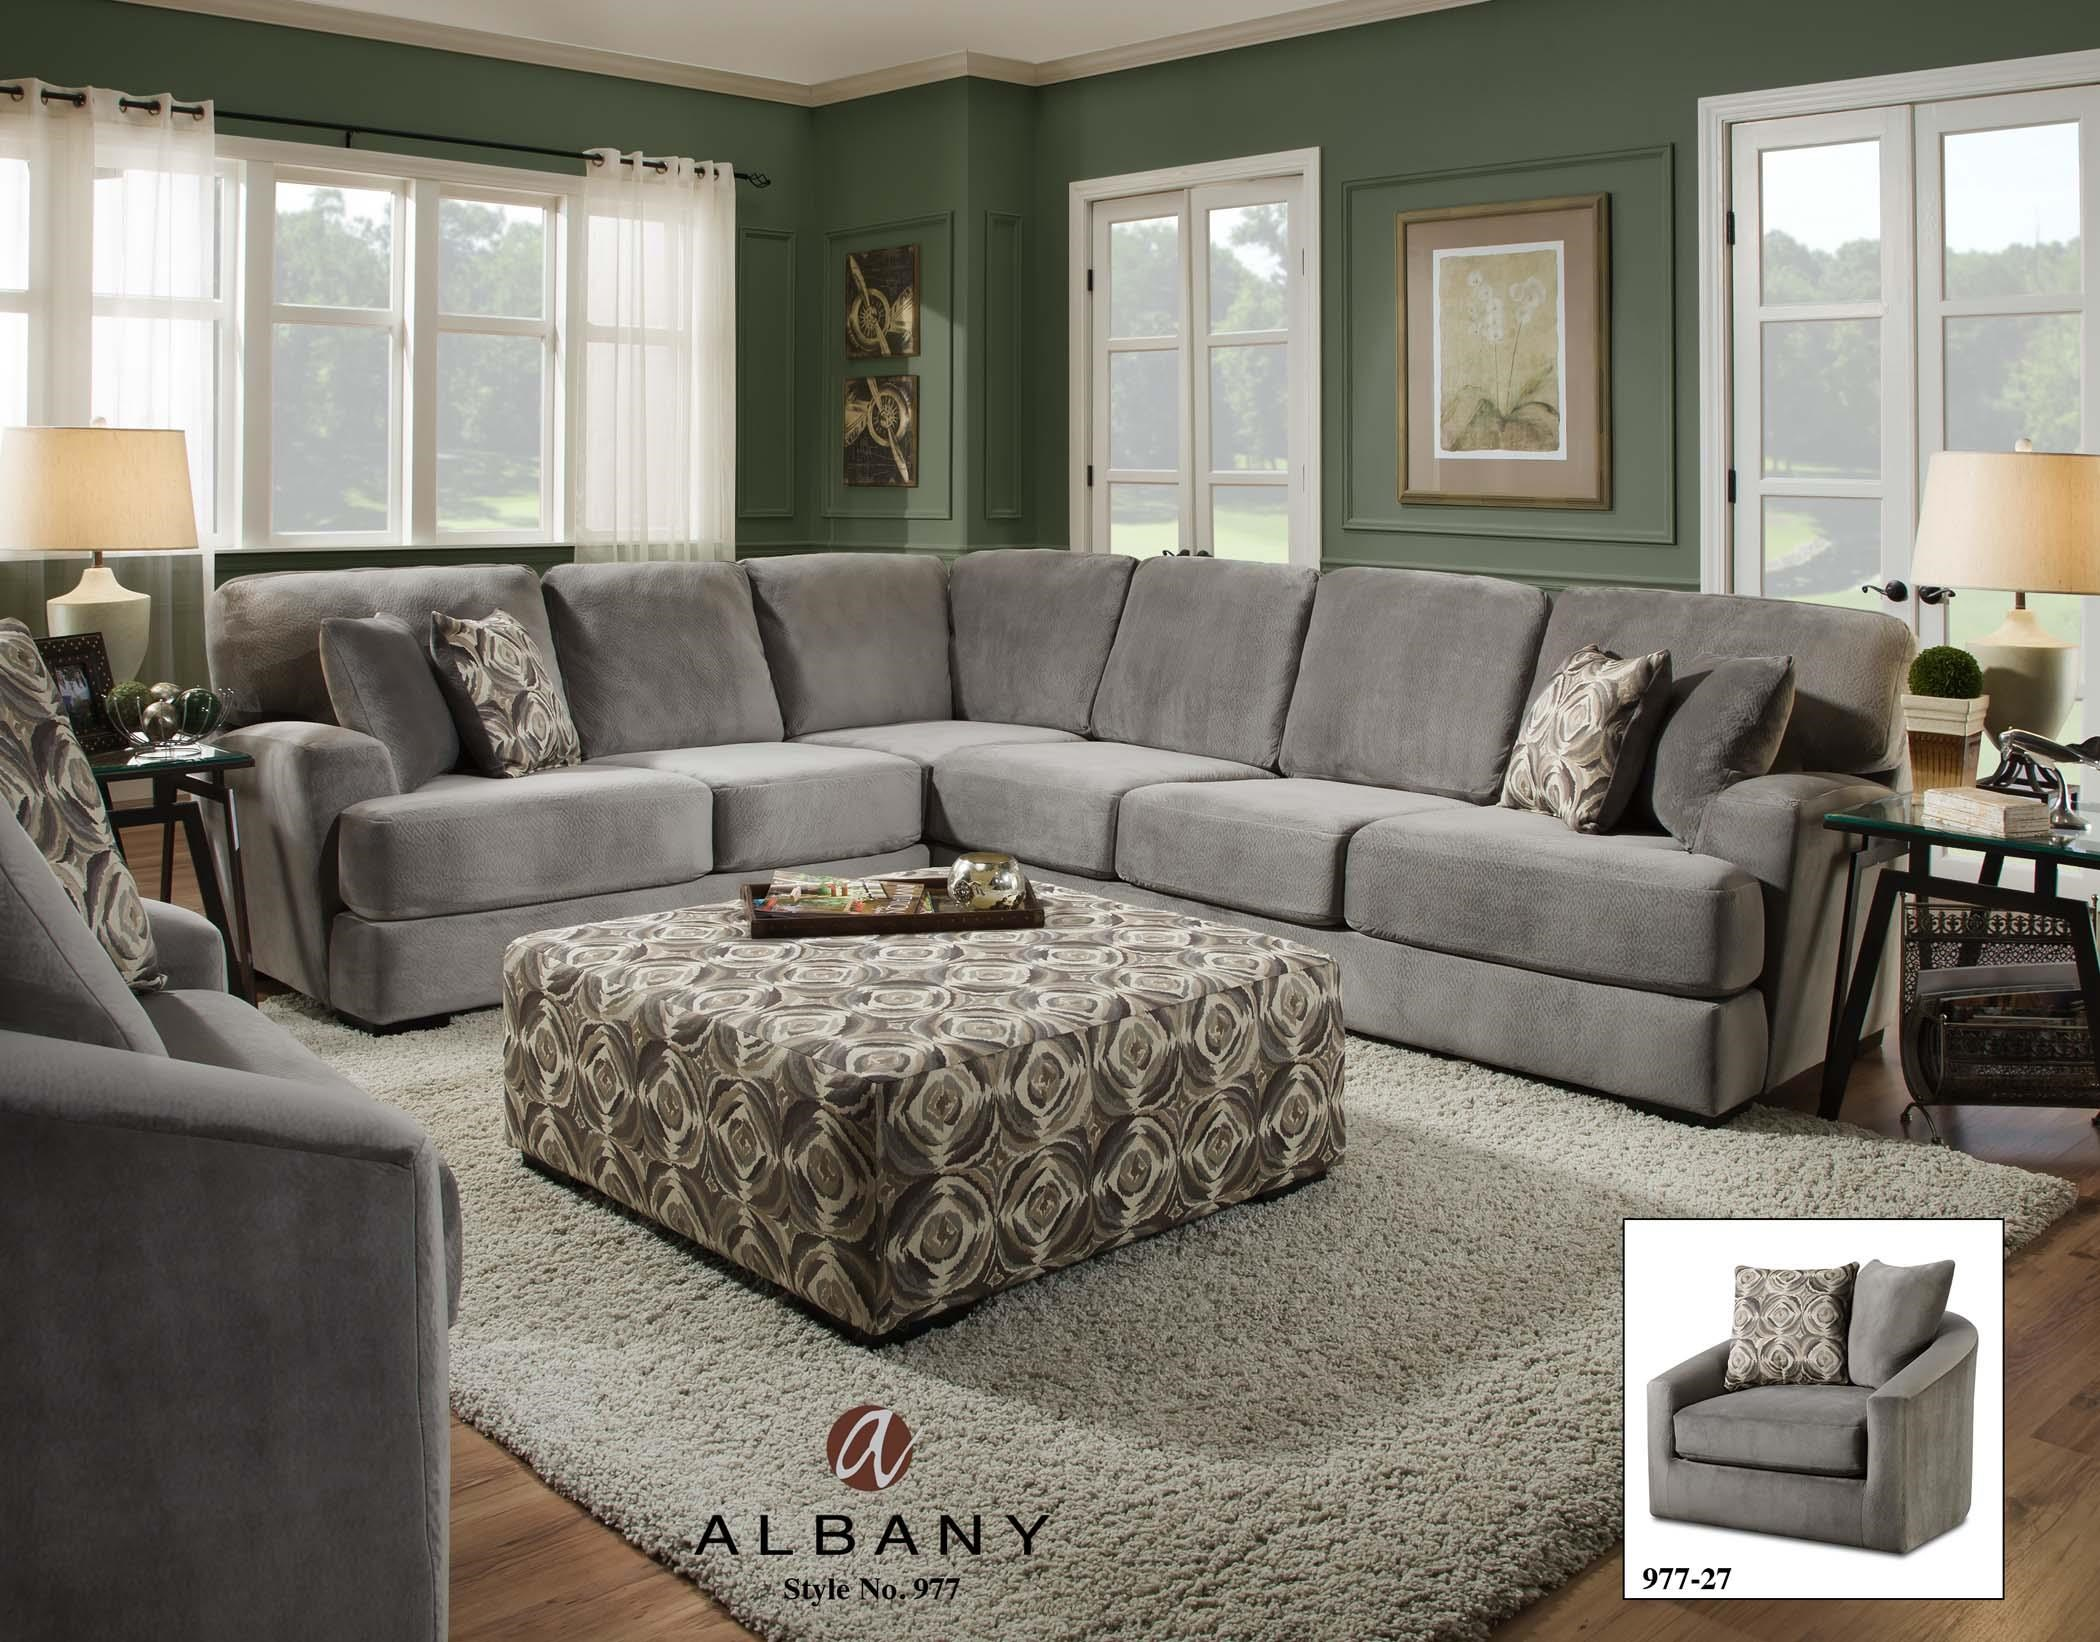 Albany 977 Transitional Sectional Sofa   Furniture Superstore   NM   Sofa  Sectional